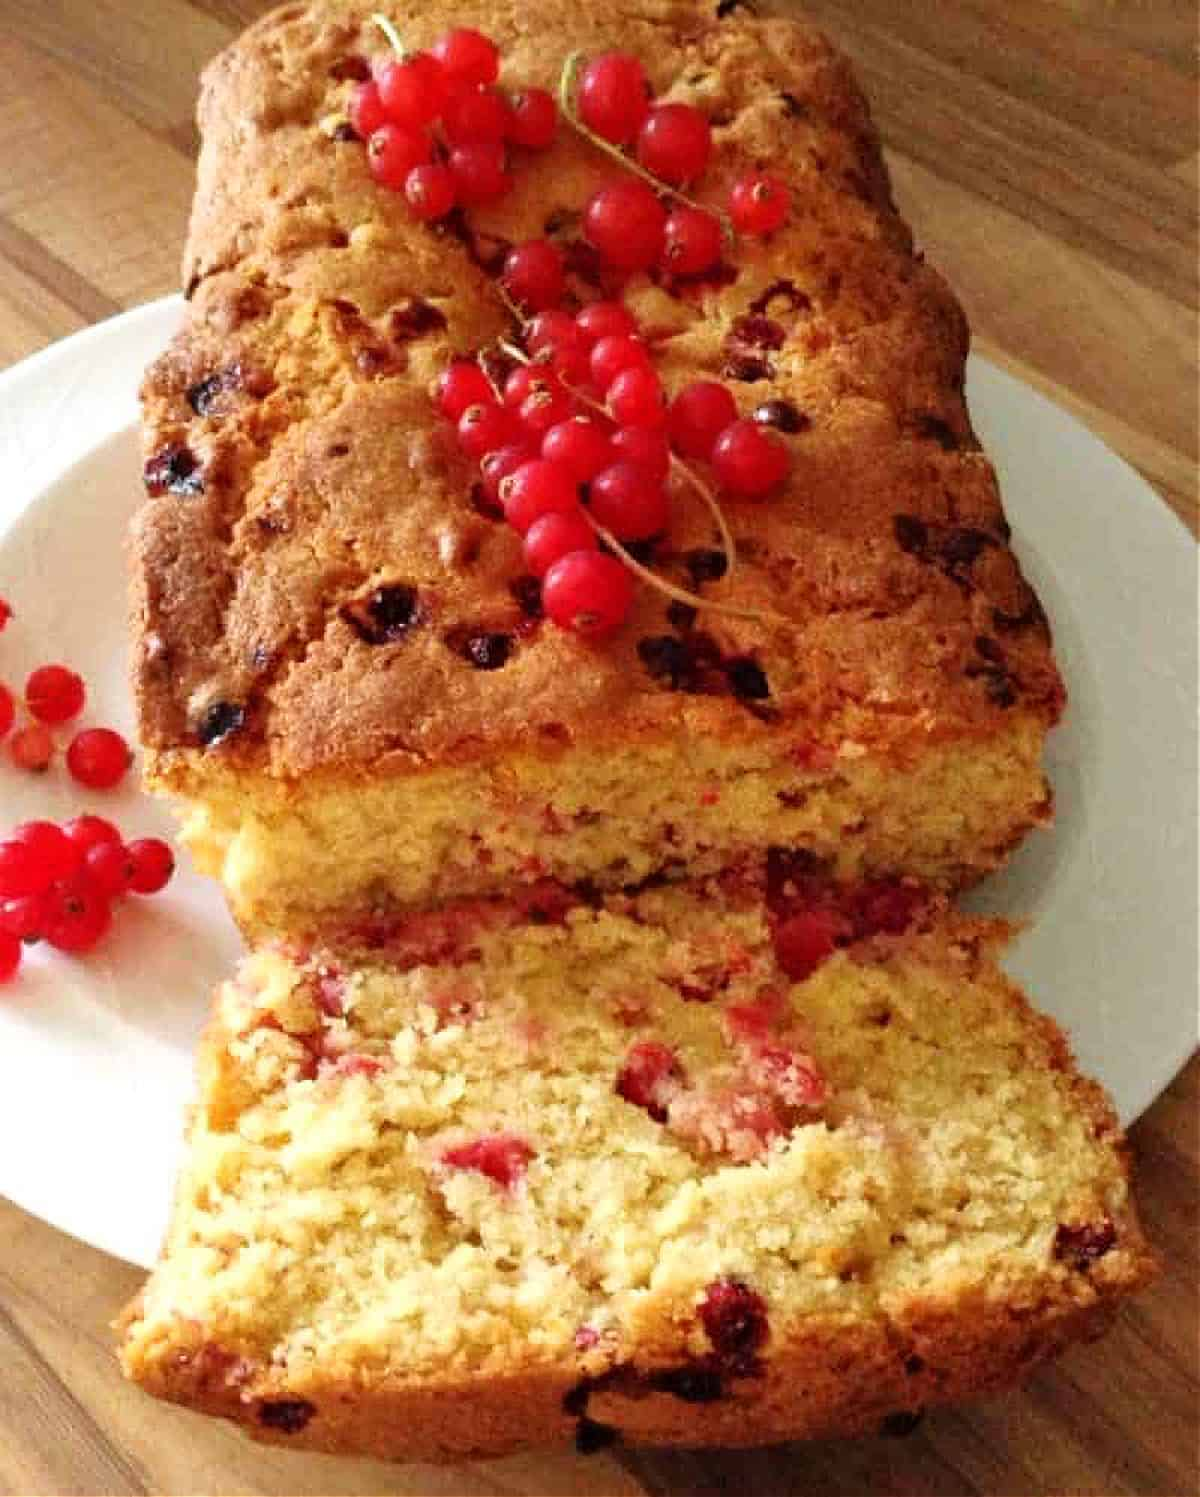 A loaf cake filled with redcurrant cut open on a white plate.